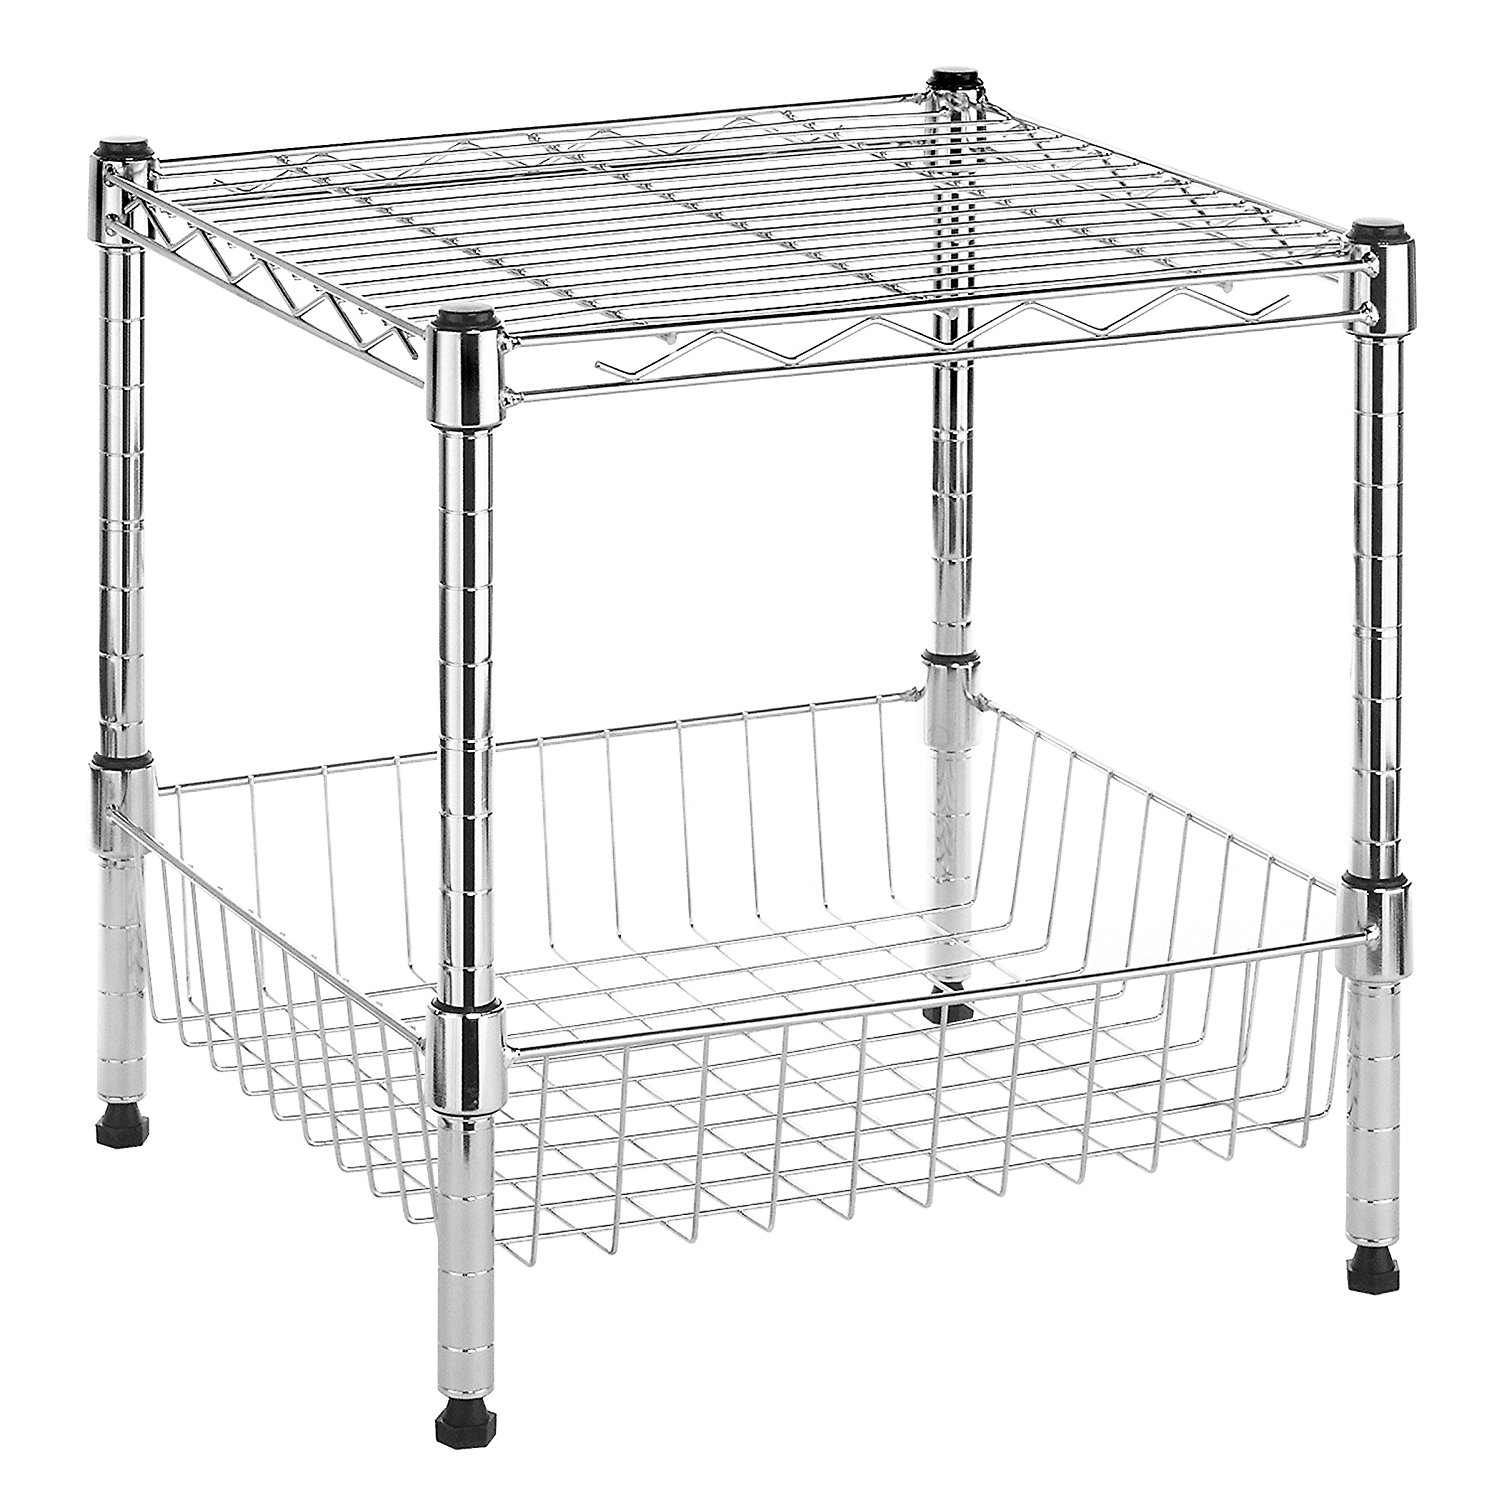 Commercial-Grade Steel Supreme Stacking Shelf w  Basket, Chrome, Quarter Elongated Seat Shelving Stacking EcoStorage... by